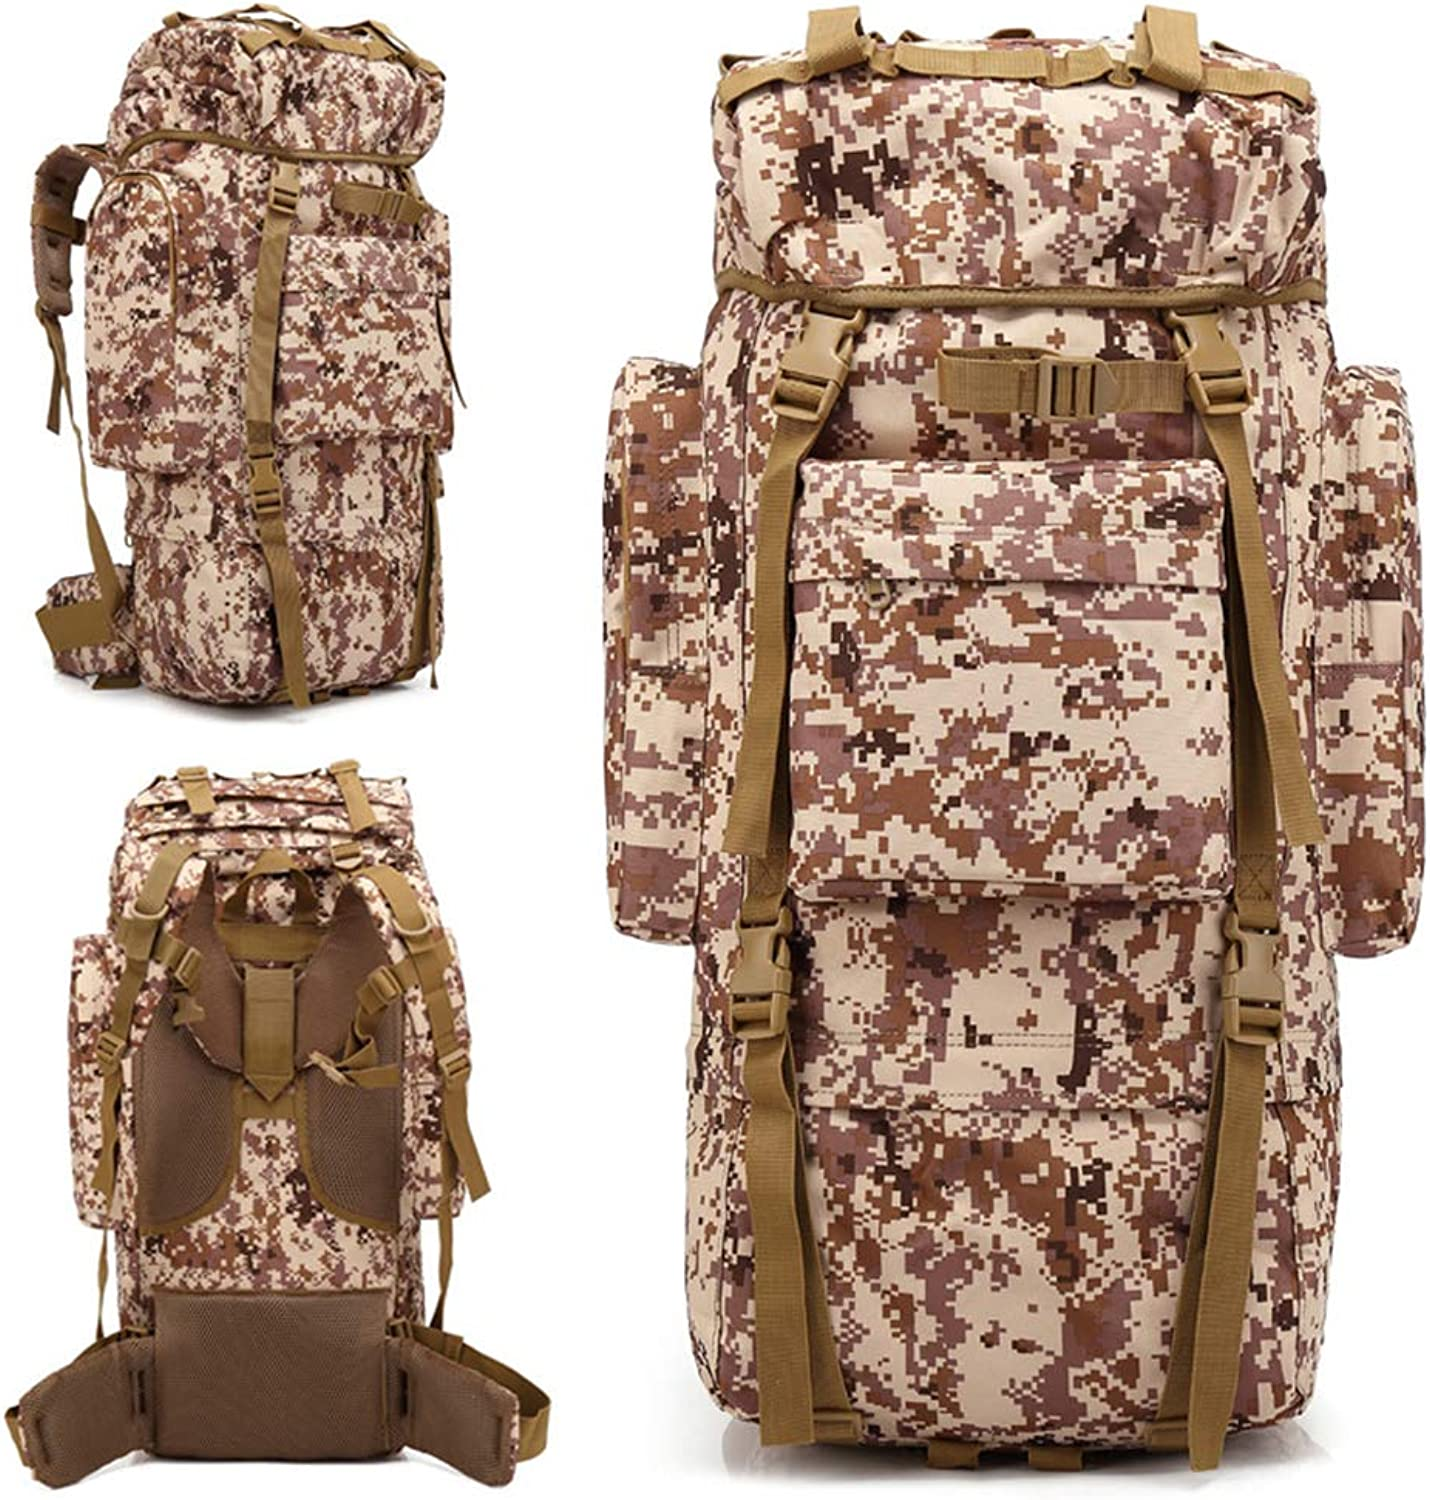 65L Internal Frame Backpack Tactical Military Rucksack for Camping Hiking Bag (Camouflage)